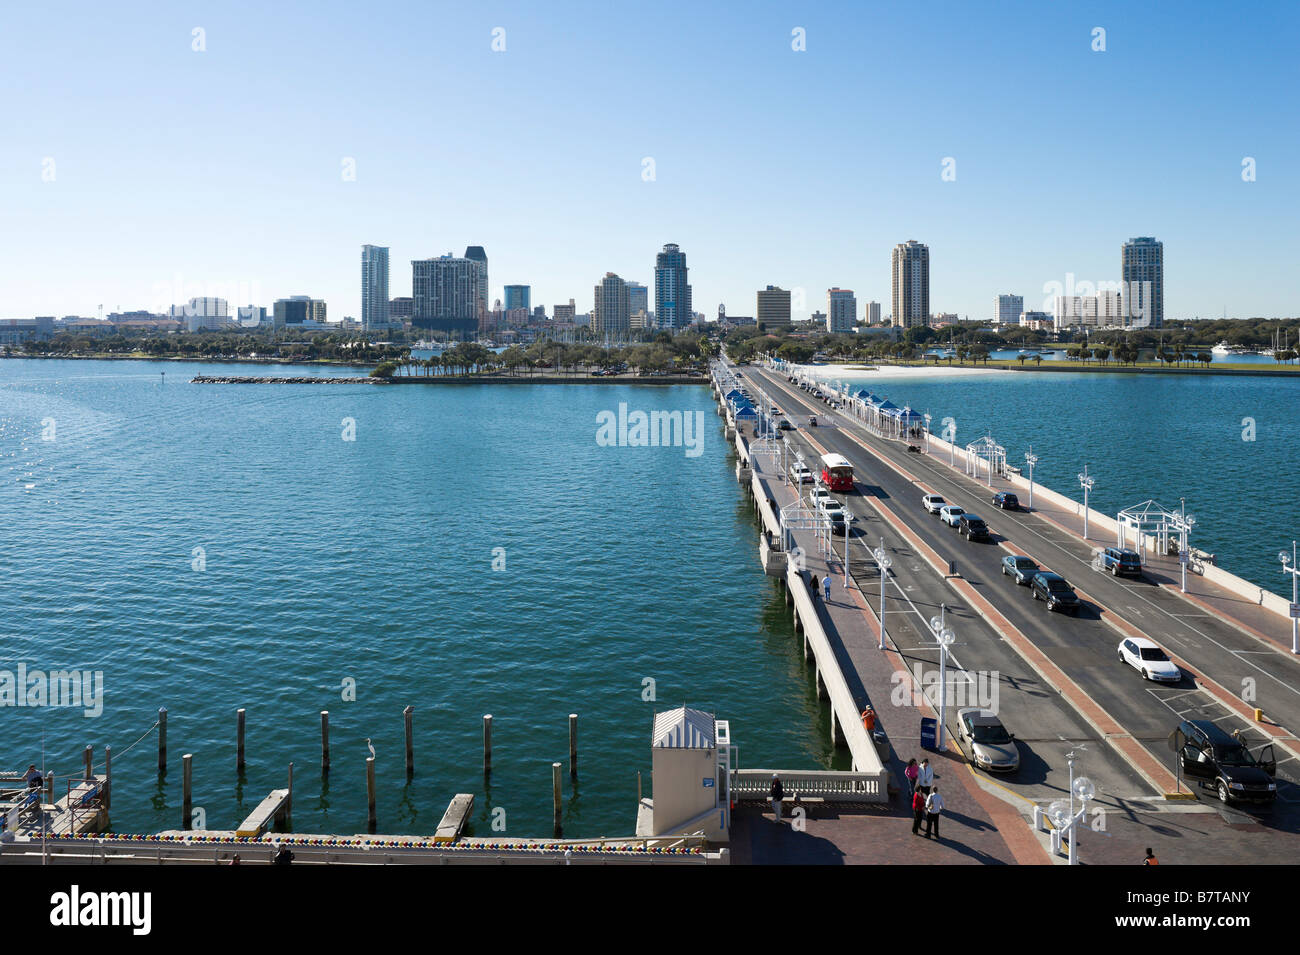 View of Downtown from St Petersburg Pier, St Petersburg, Gulf Coas, Florida, USA - Stock Image